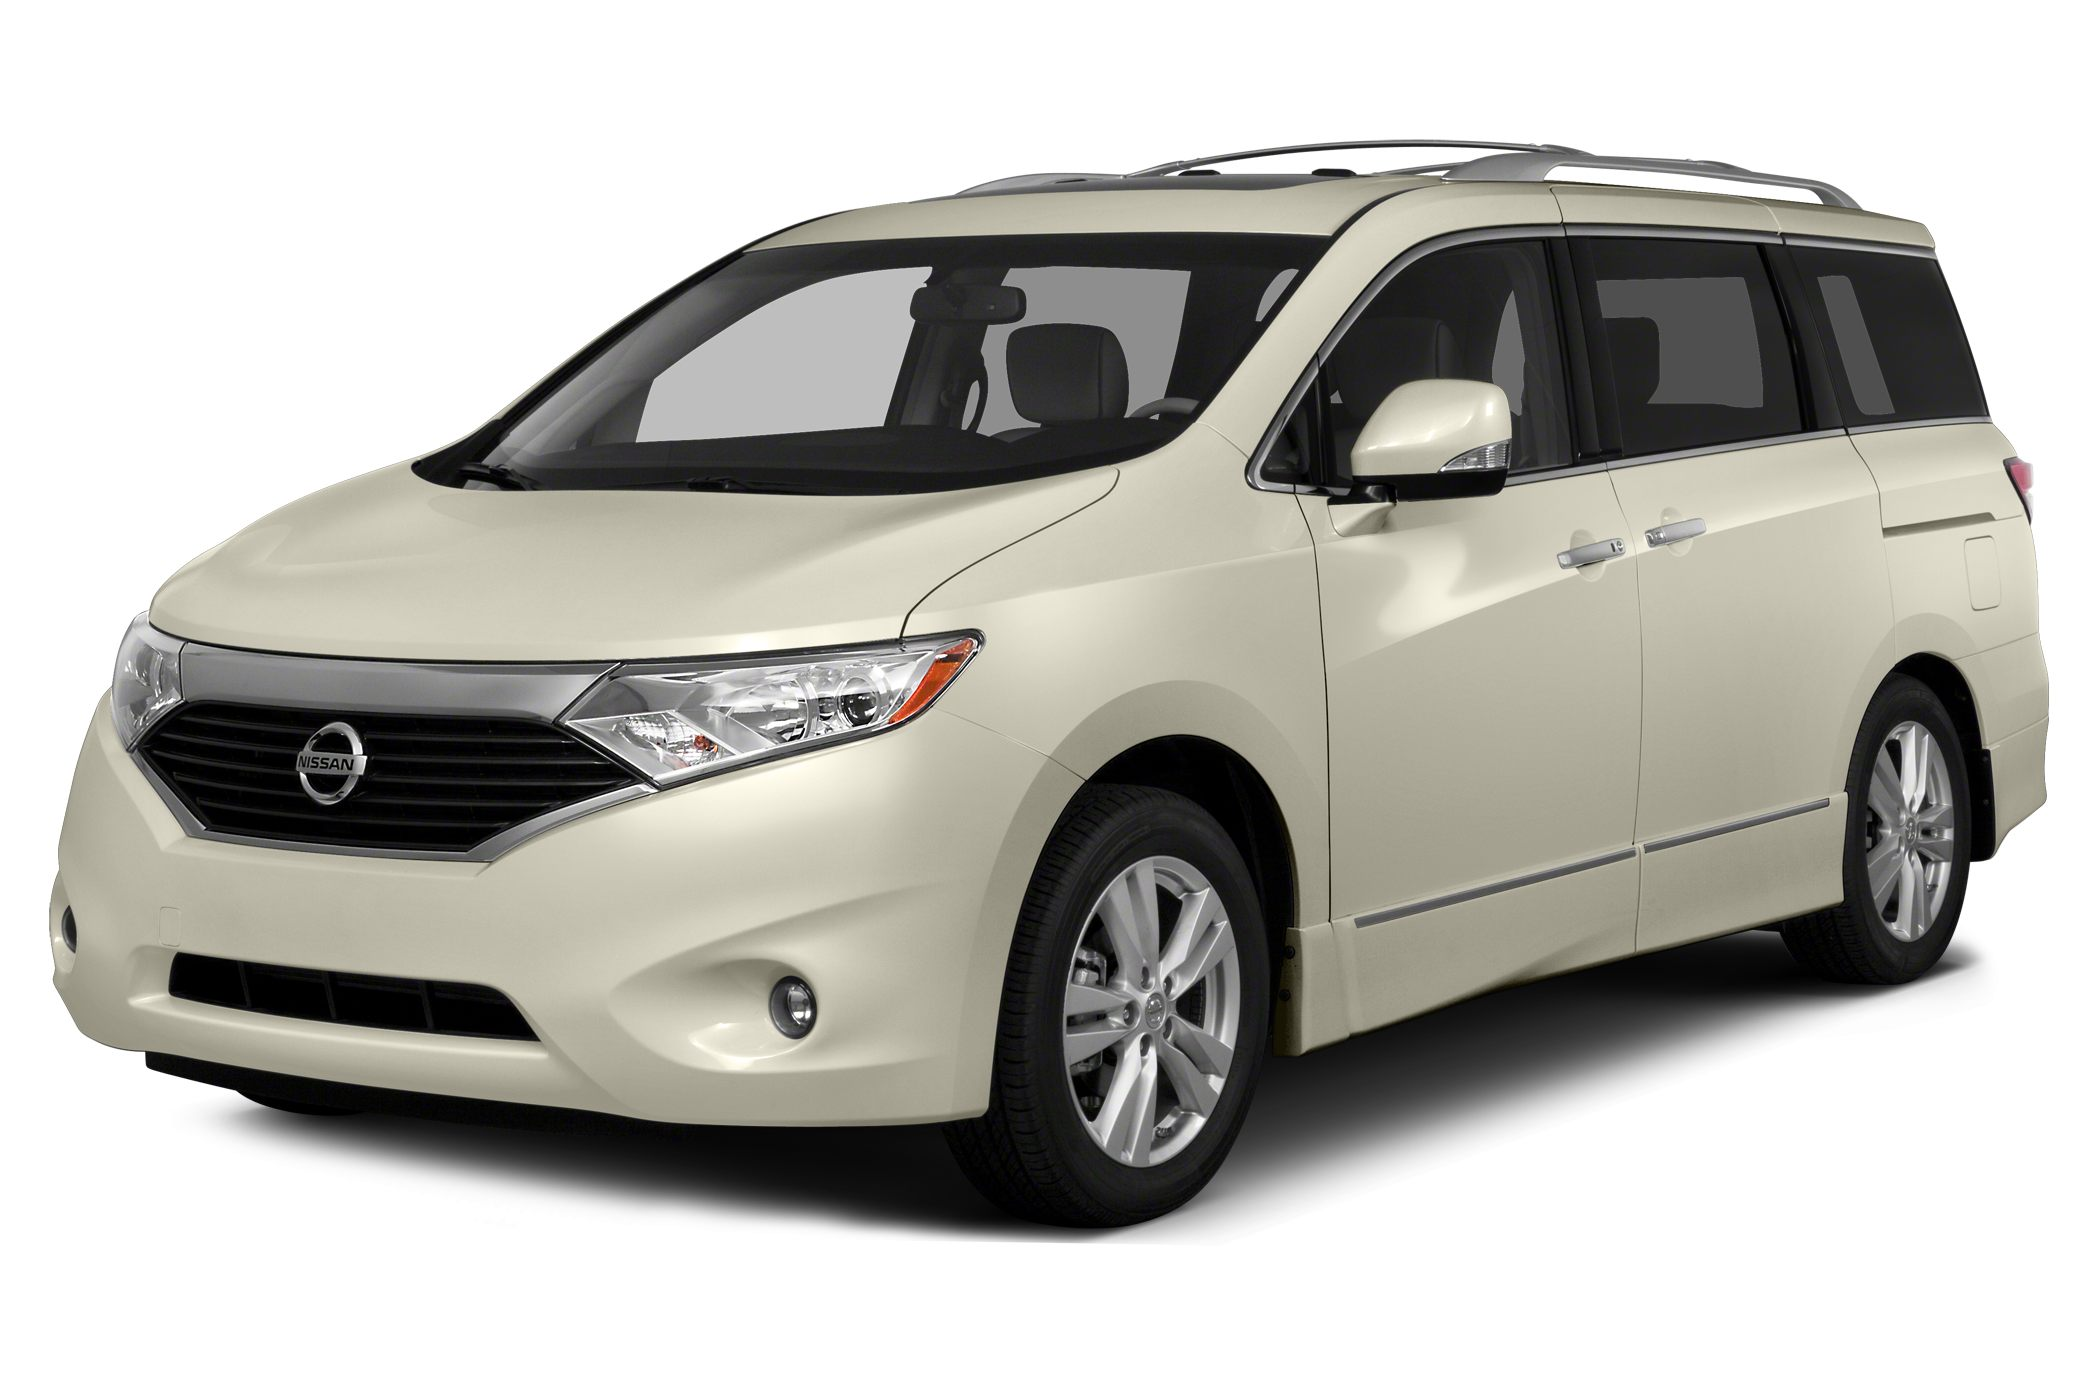 2014 Nissan Quest S Minivan for sale in Chesapeake for $22,233 with 16,548 miles.